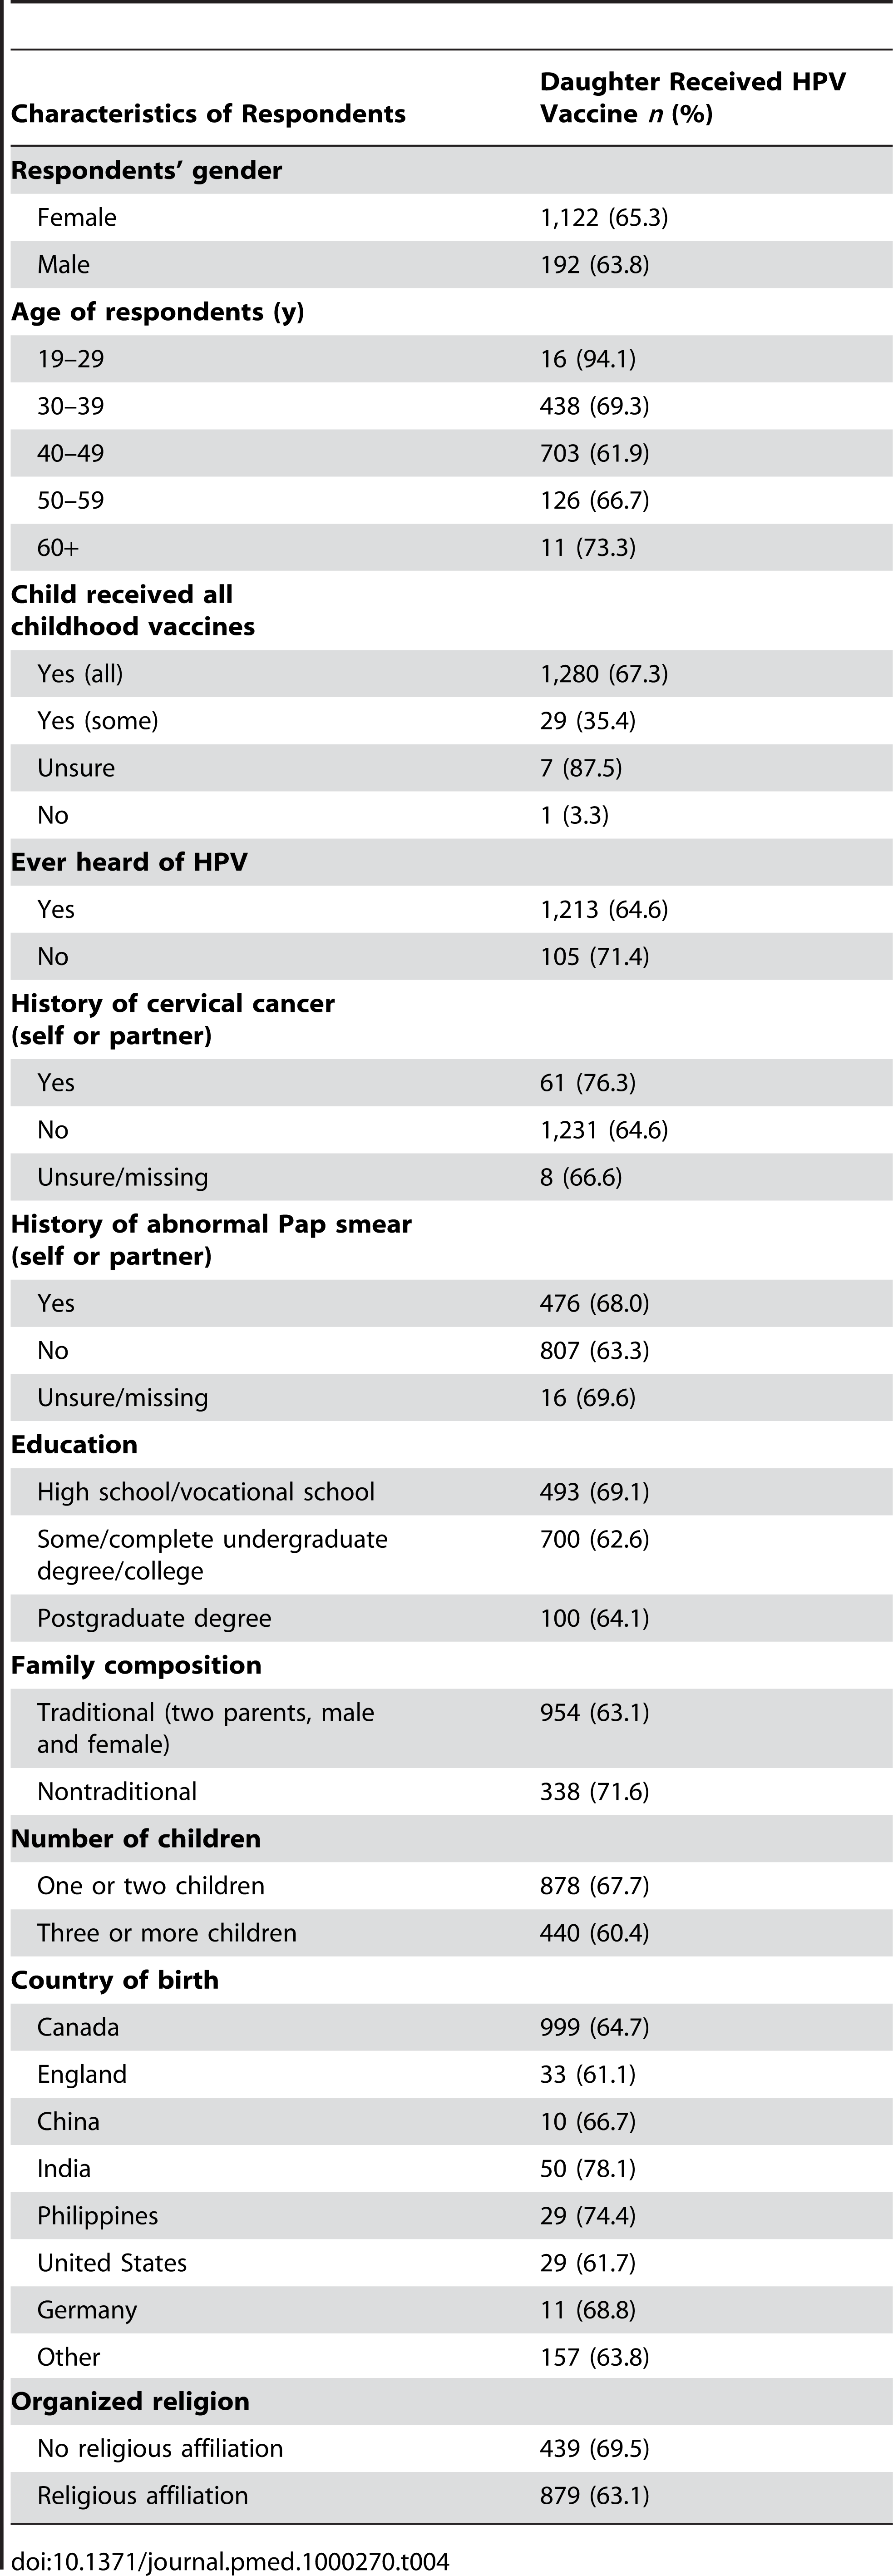 Bivariate analysis of uptake rate of HPV vaccine in population.